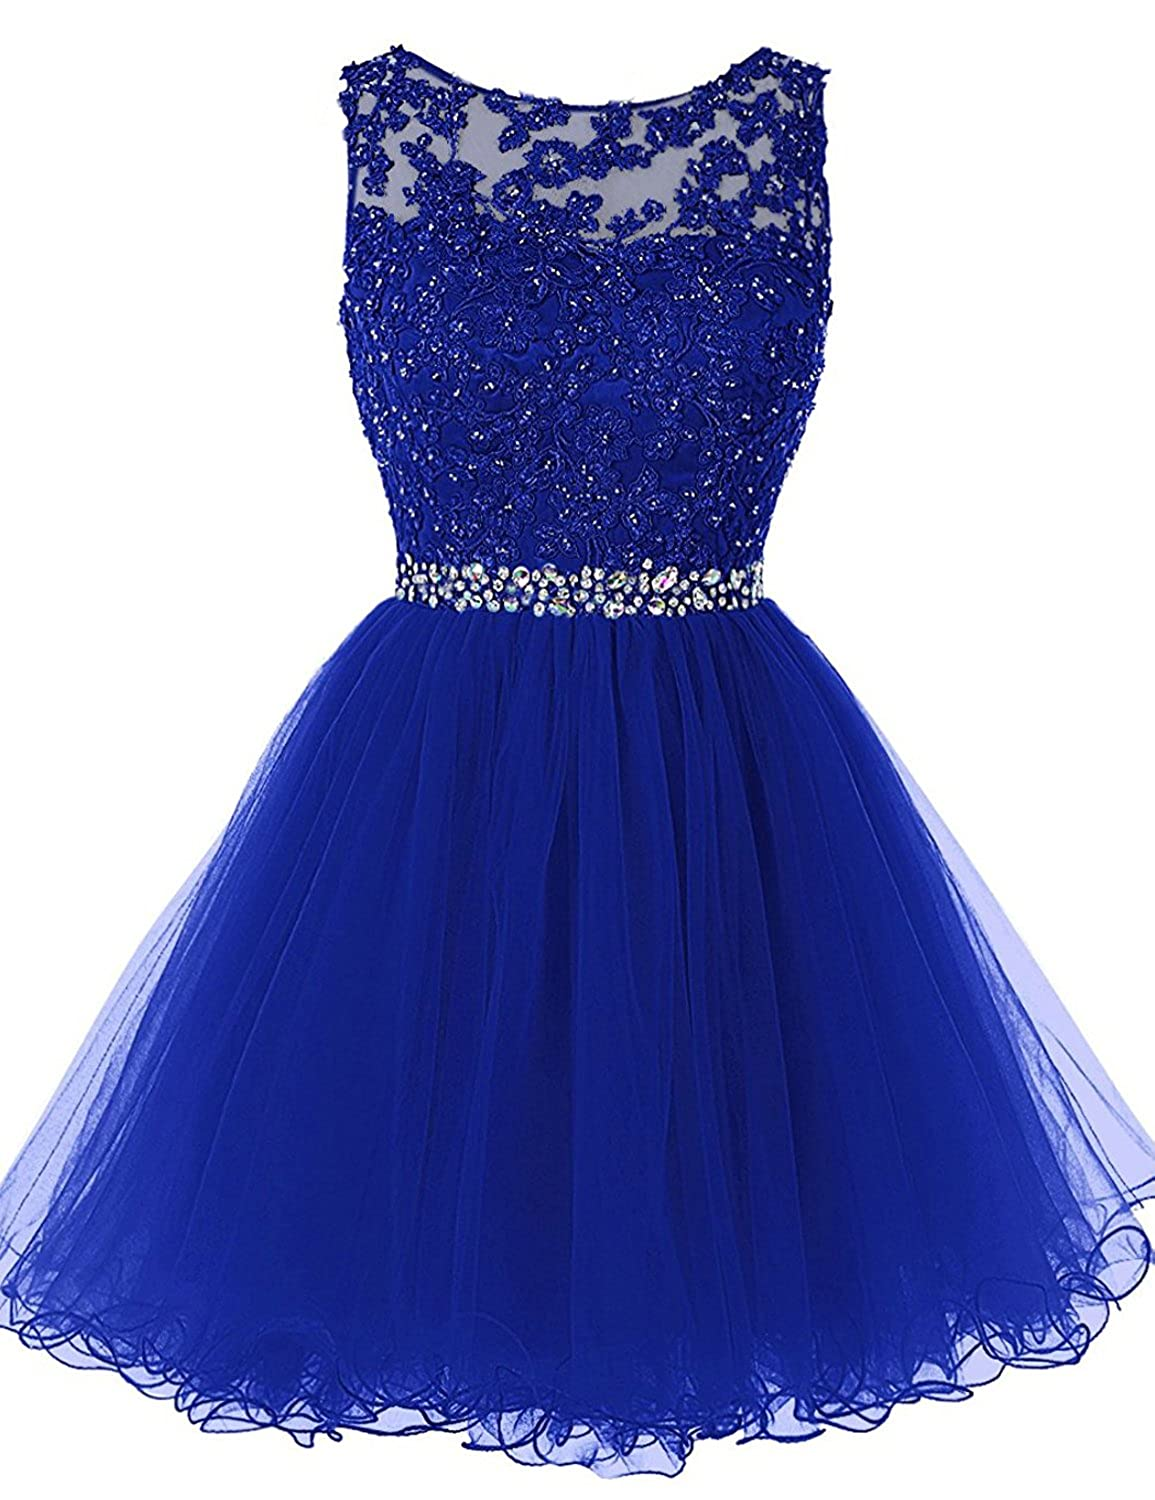 361royal bluee Sarahbridal Women's Short Tulle Beading Homecoming Dresses 2019 Prom Party Gowns